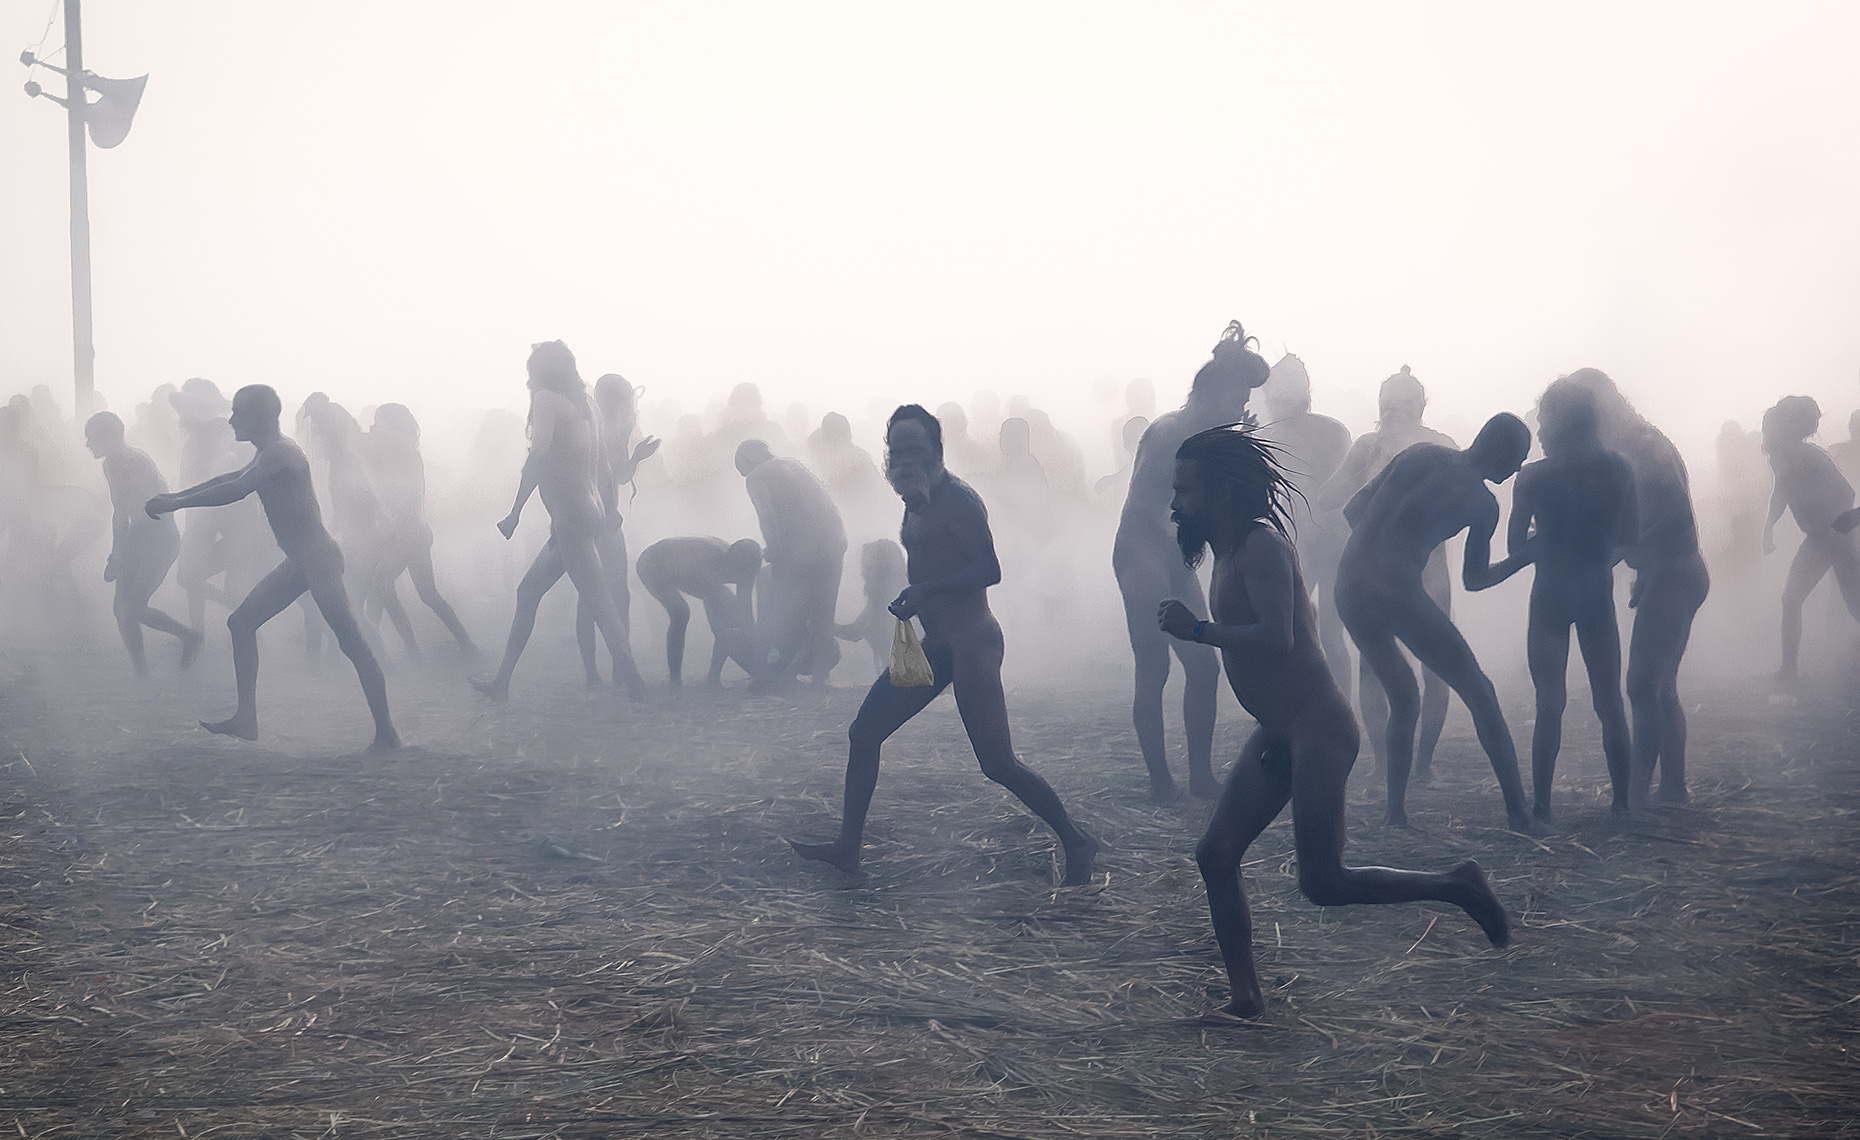 Naked Naga Sadhus Run To Ganges River, Kumbh Mela, Allahabad, India